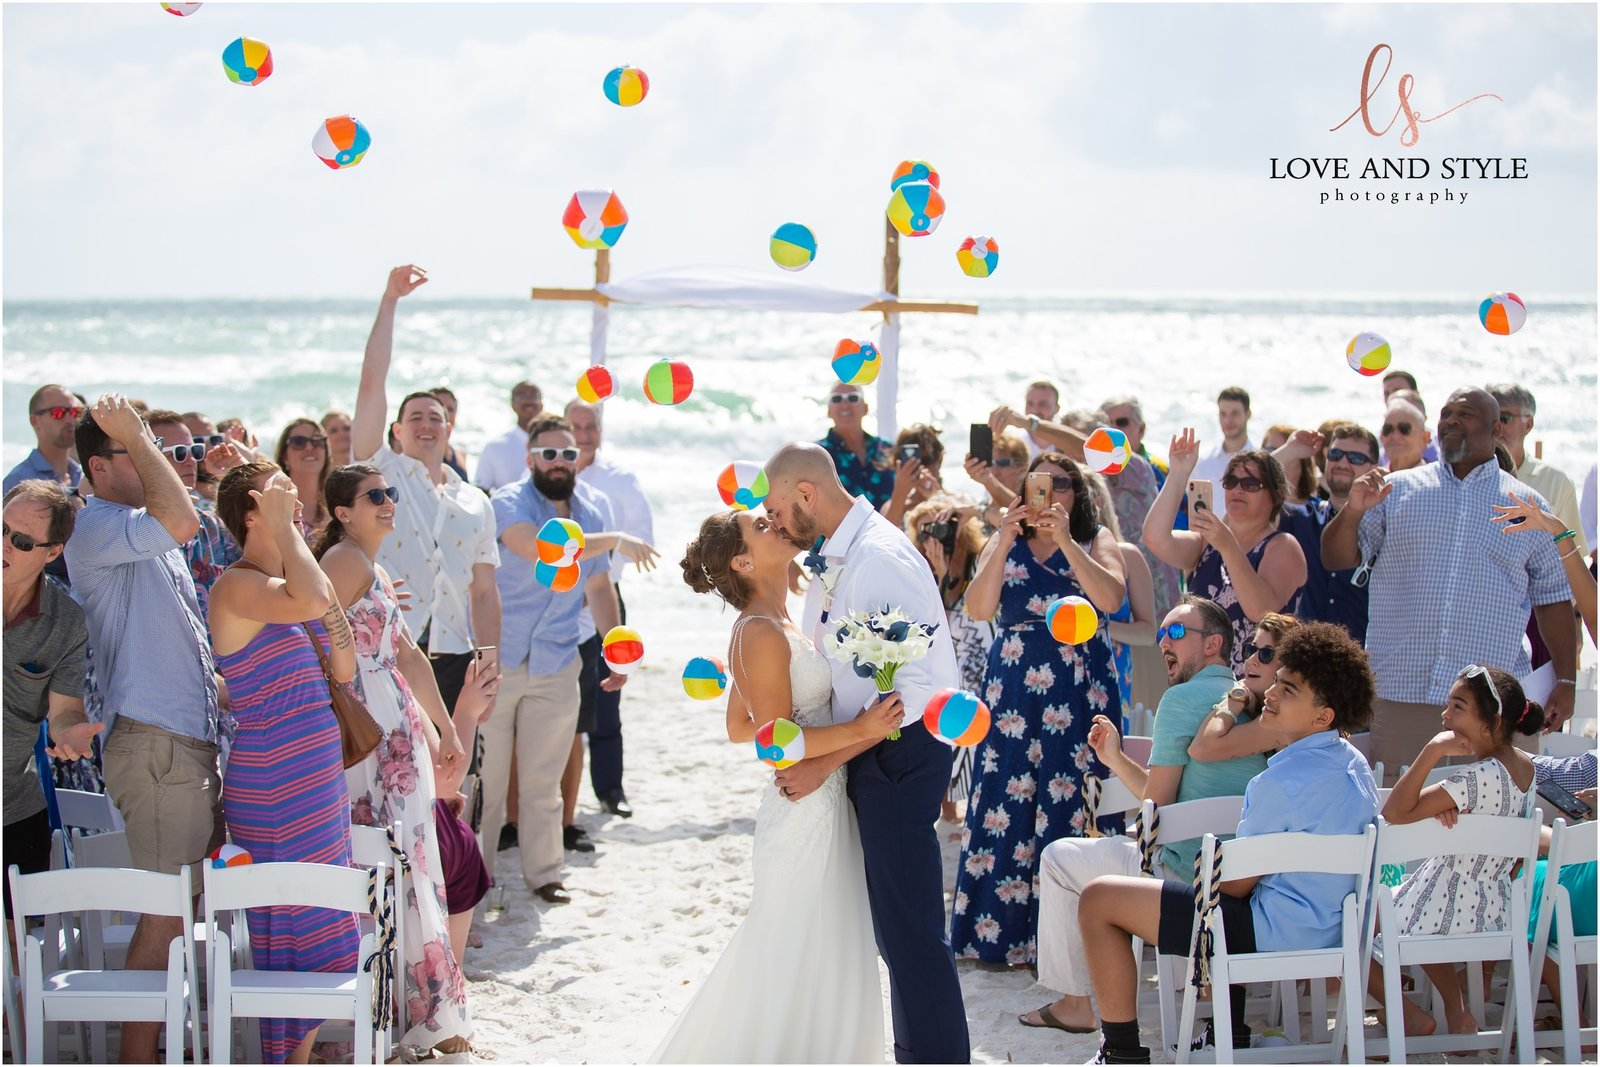 Bride and Groom kissing at the end of the aisle while guests throw beach balls in the air at The Beach House Restaurant on Anna Maria Island